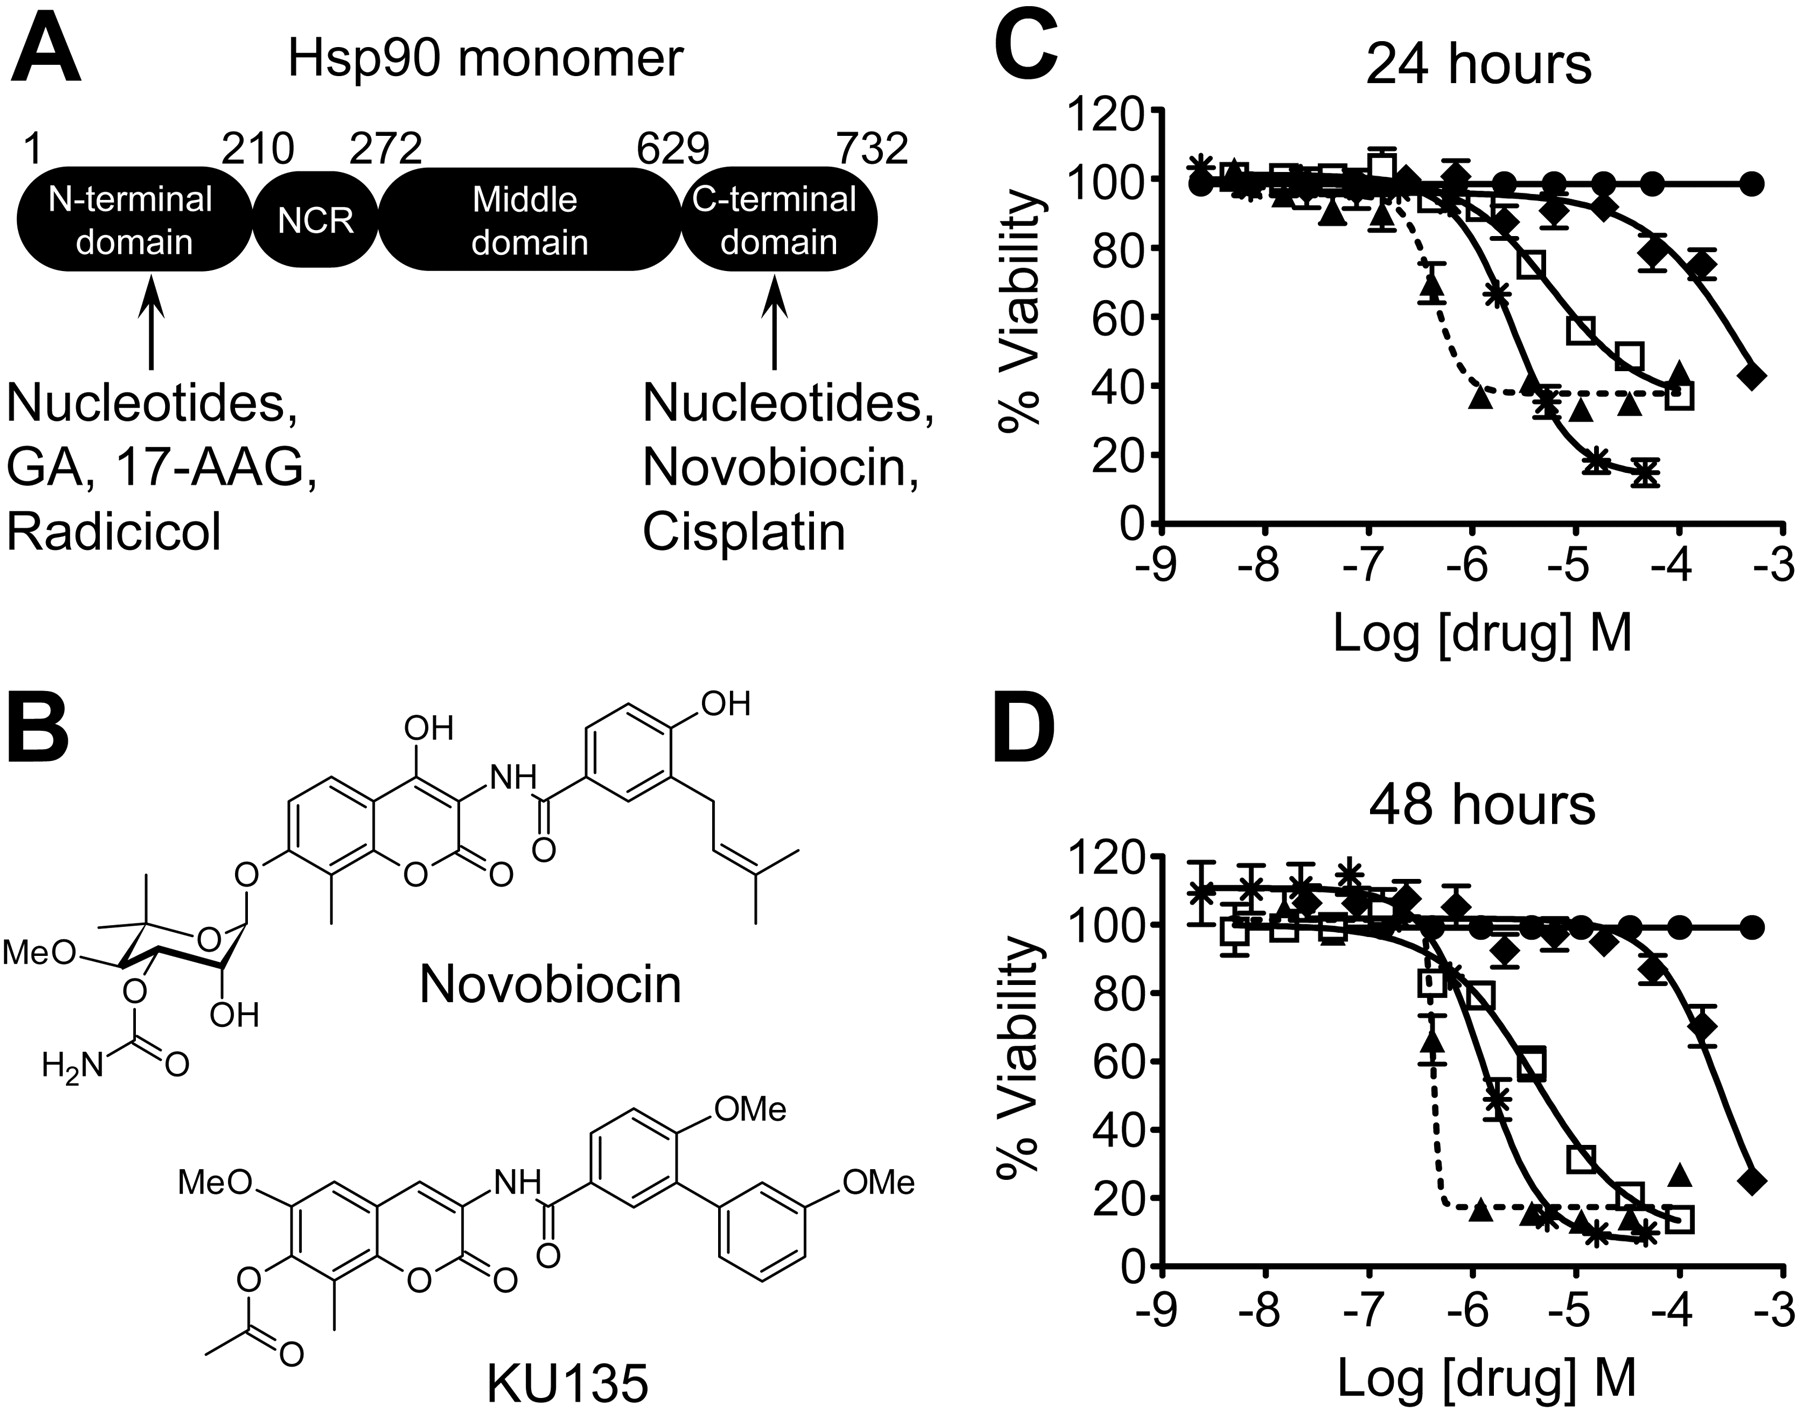 KU135, a Novel Novobiocin-Derived C-Terminal Inhibitor of the 90-kDa